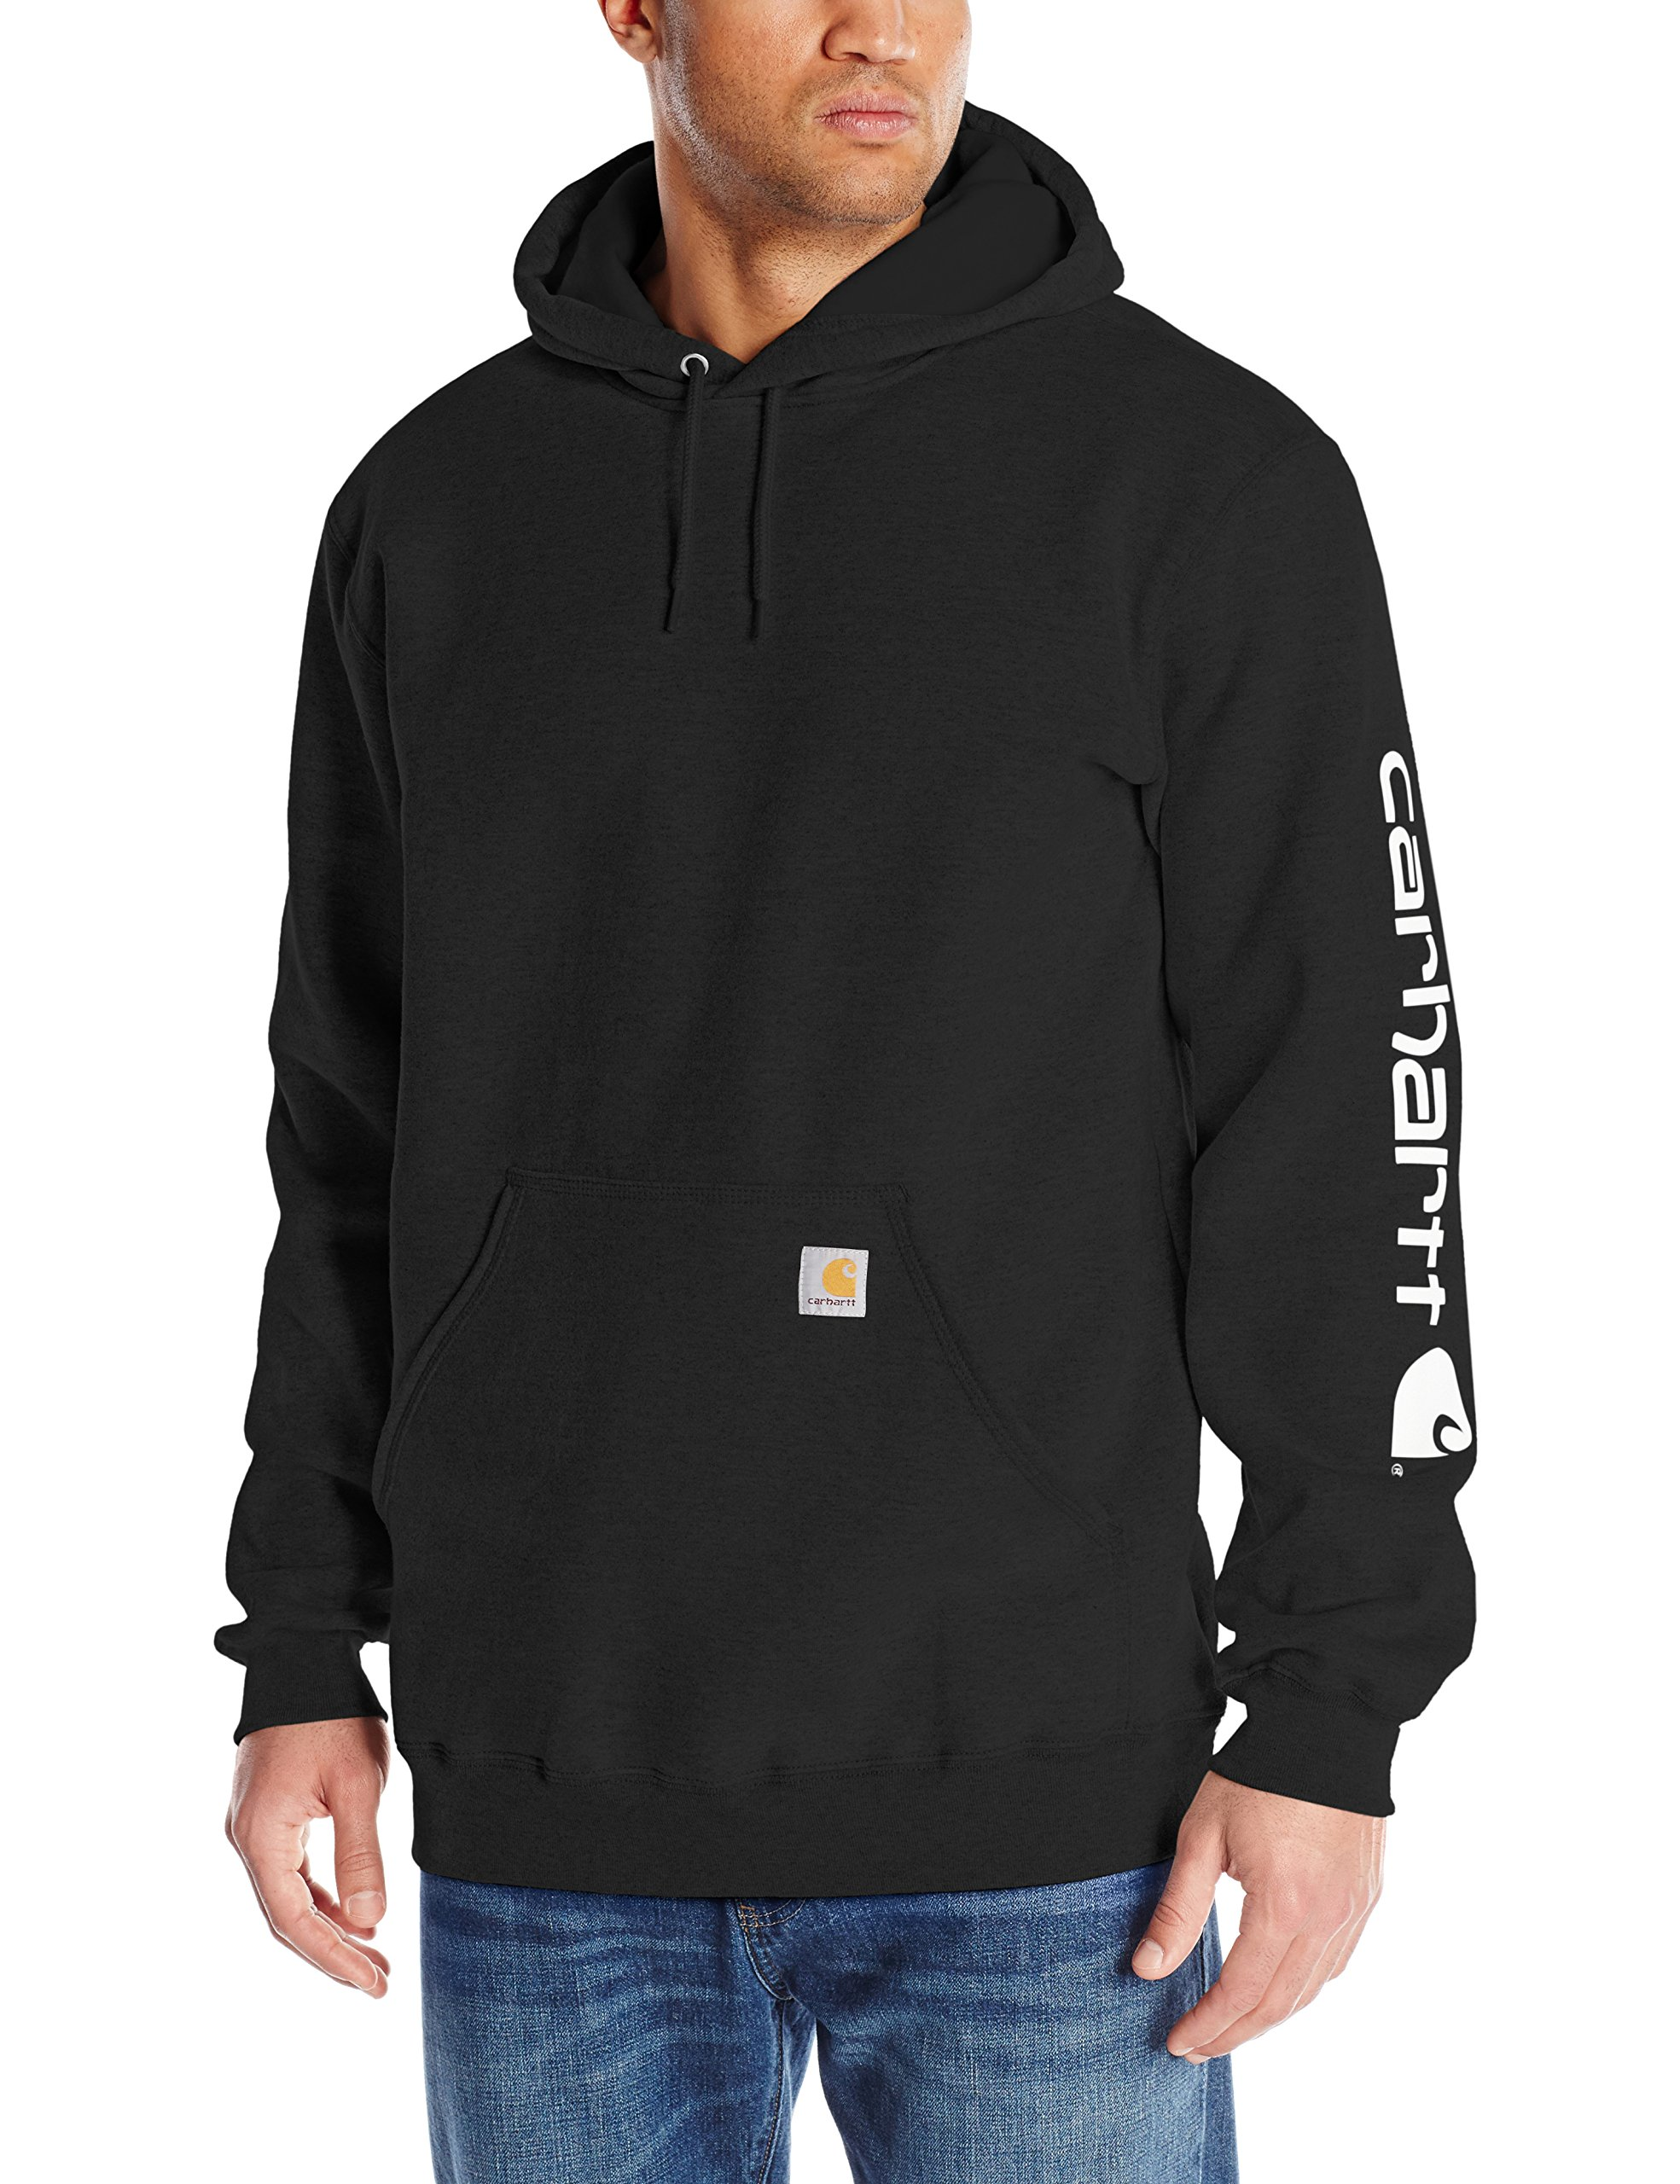 Carhartt Men's Midweight Sleeve Logo Hooded Sweatshirt (Regular and Big & Tall Sizes), Black, X-Large Tall by Carhartt